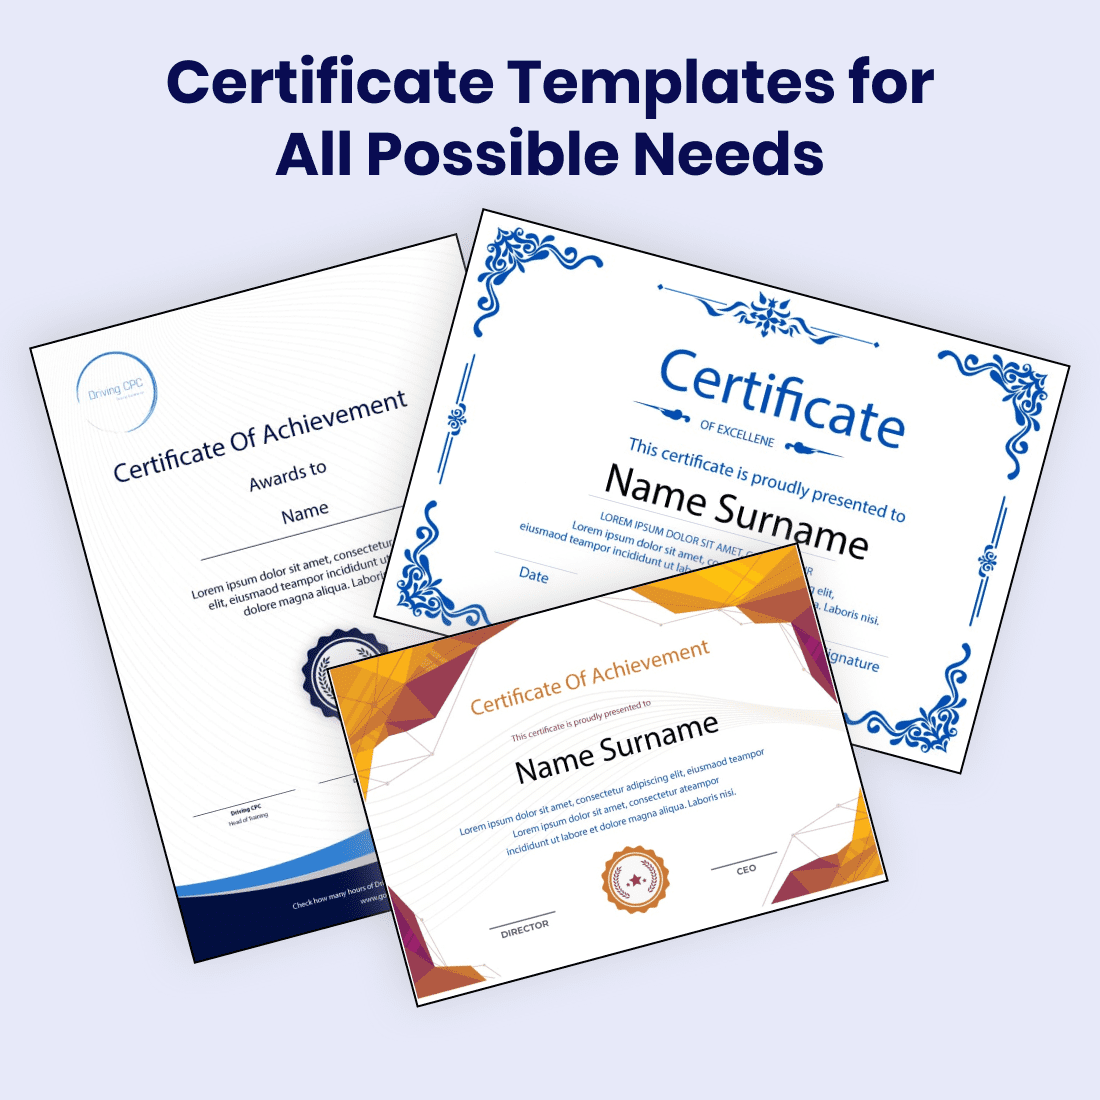 Certificate Templates for All Possible Needs